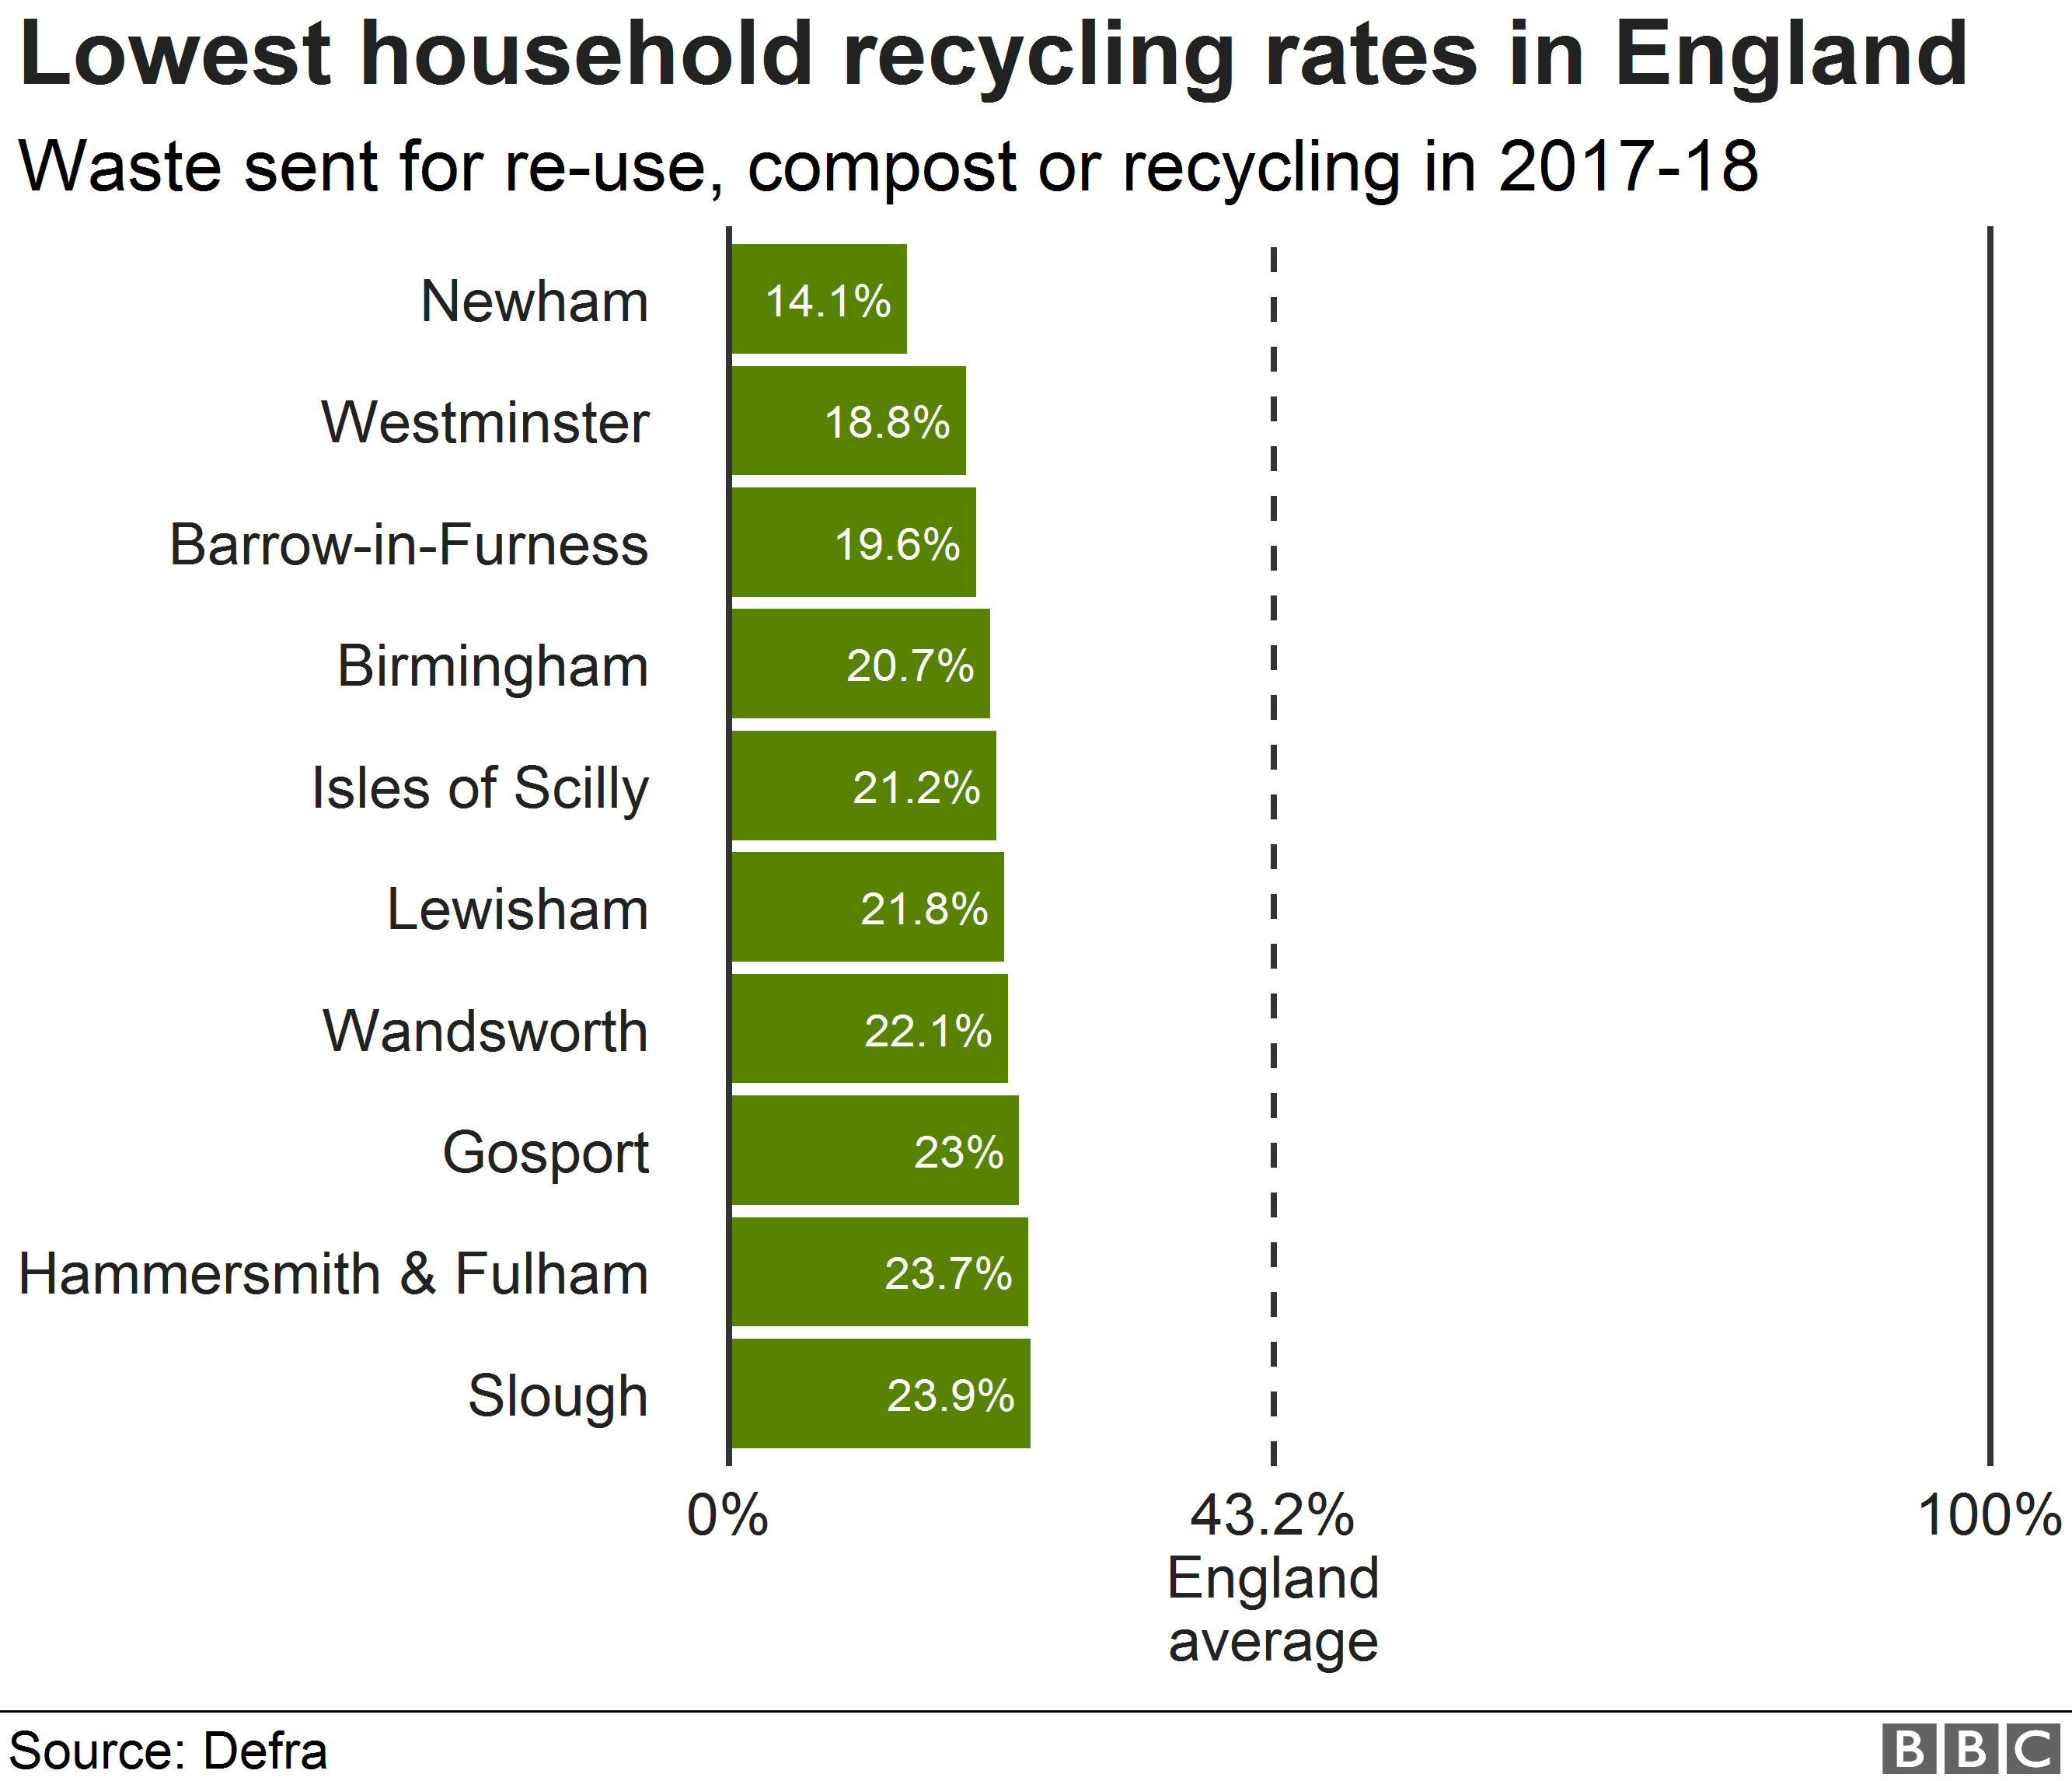 Lowest household recycling rates in England